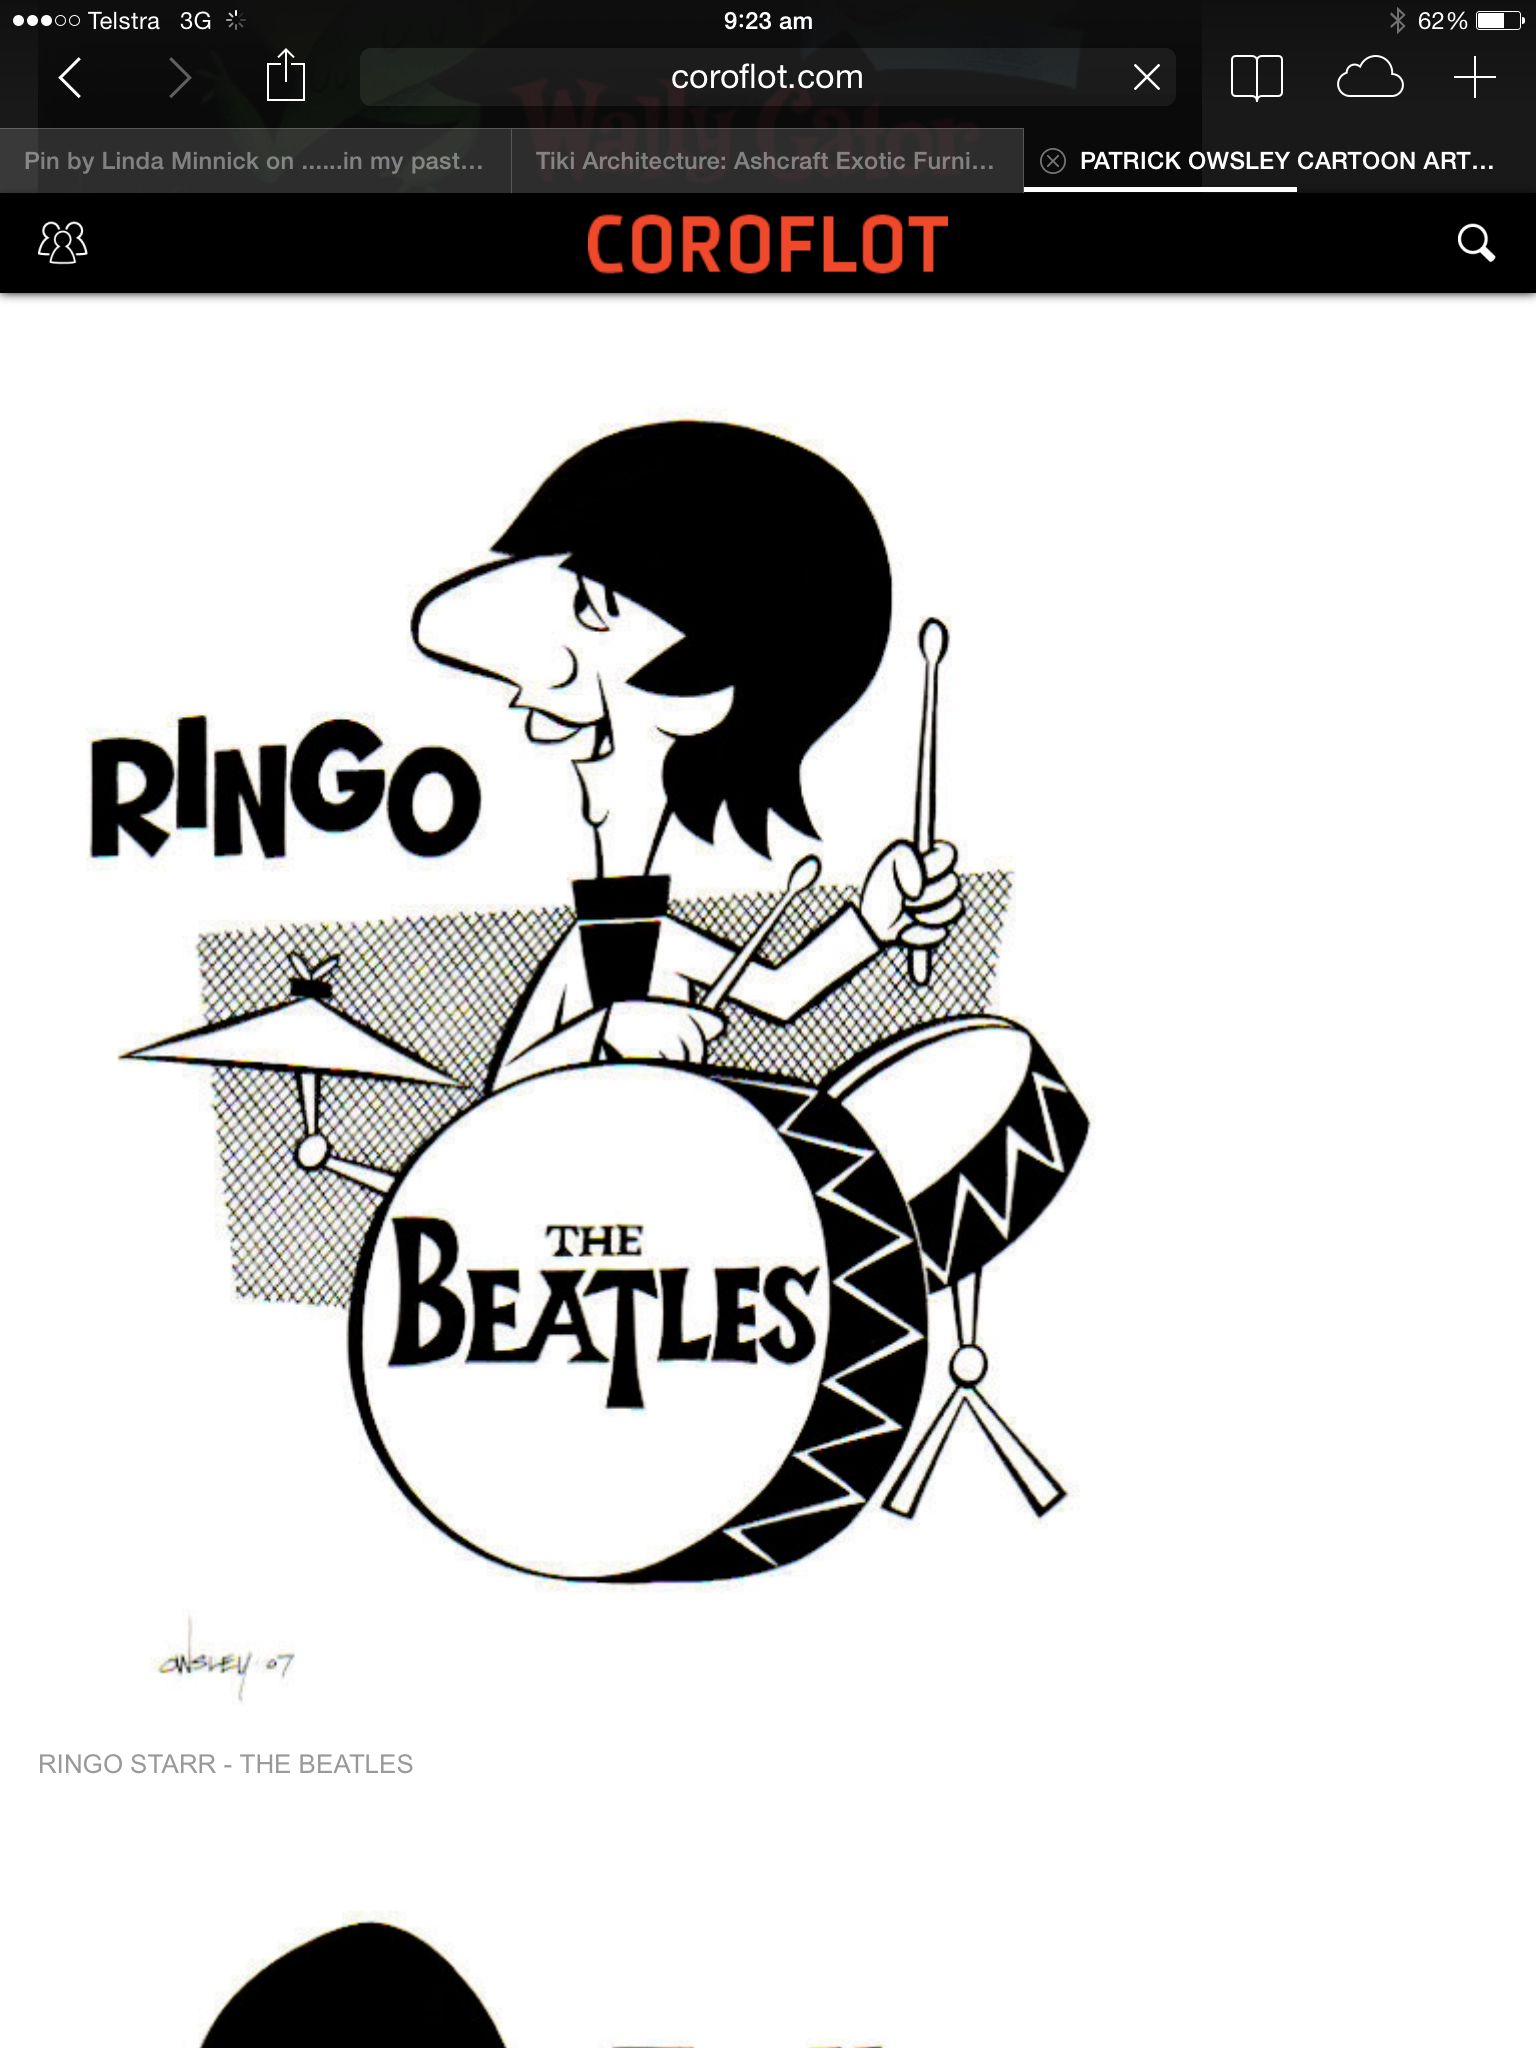 The Beatles Cartoon Ringo Starr